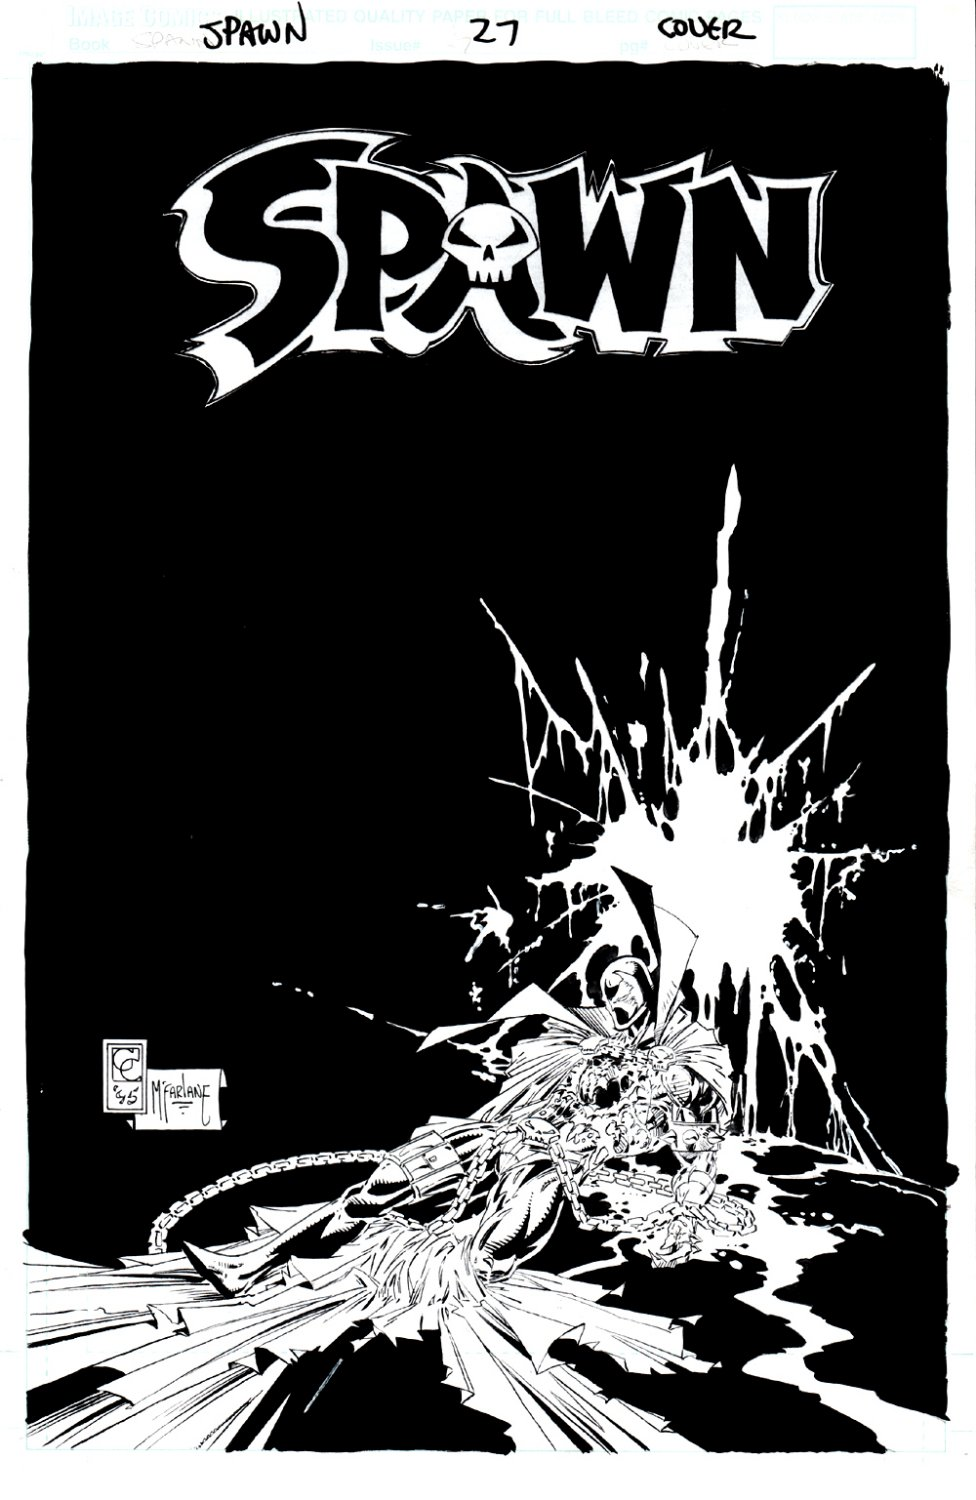 Spawn #27 Cover (FIRST 'CURSE' STORY) 1995